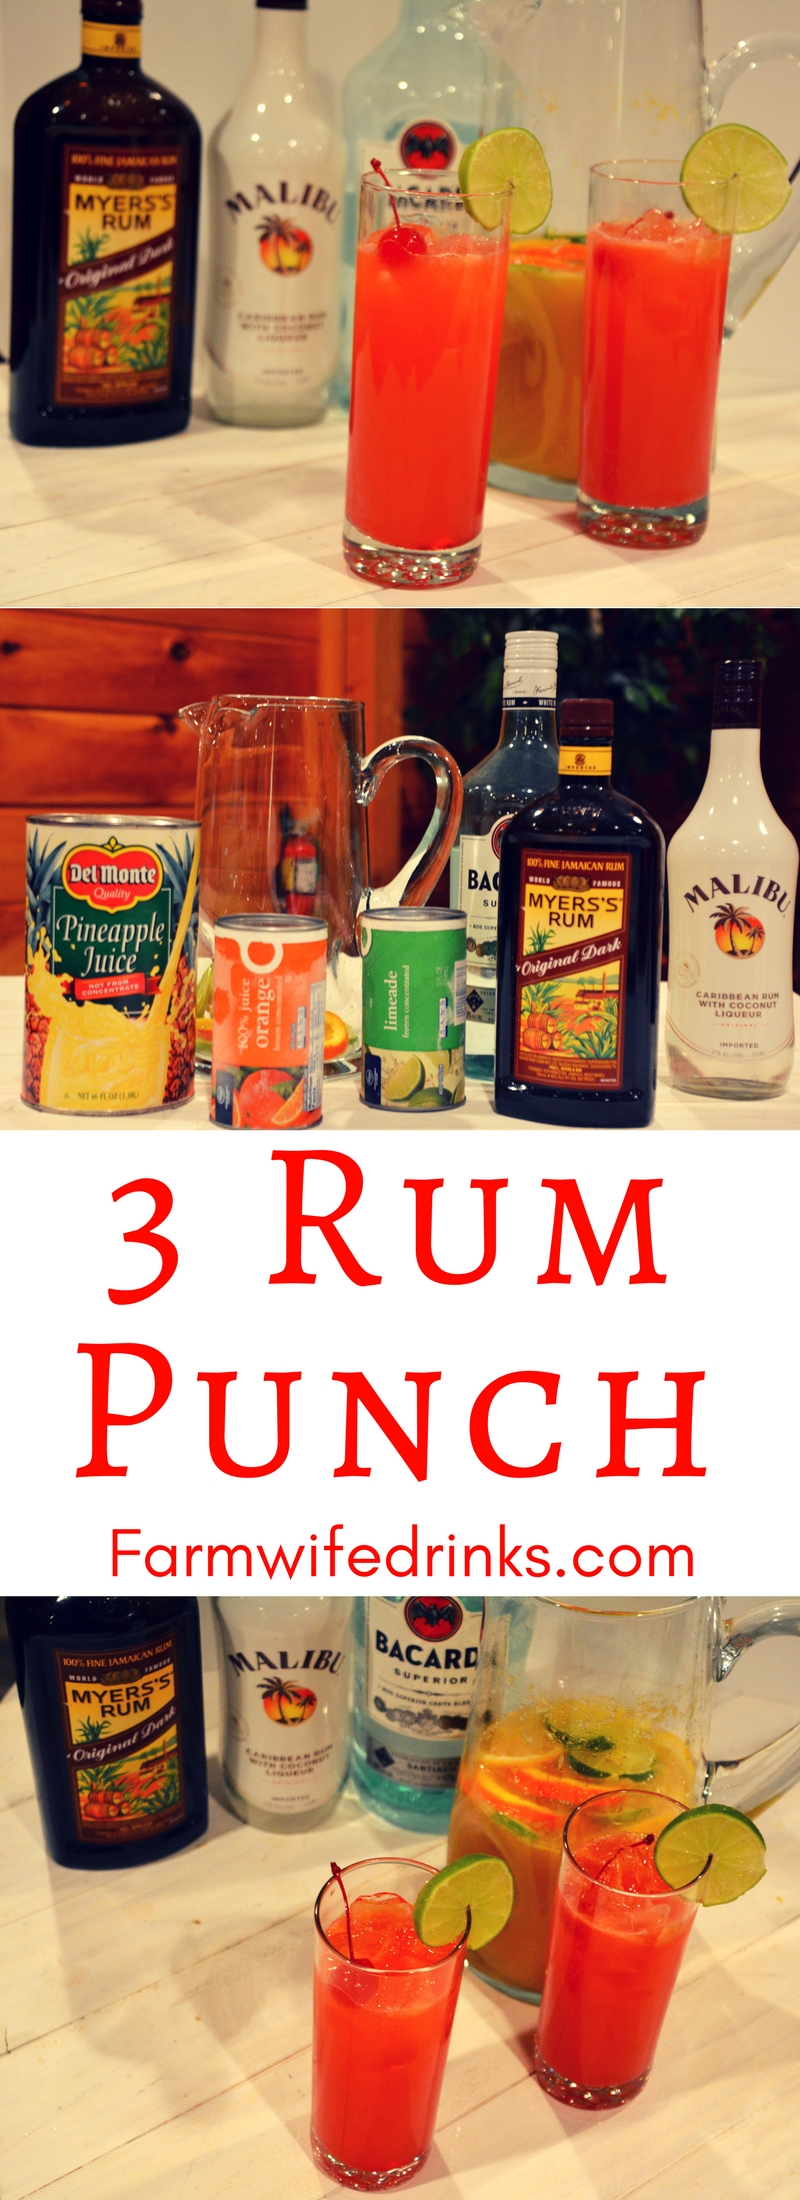 3 rum punch is the sweet combination of pineapple, lime and orange juices with dark, white, and coconut rums with just a hint of grenadine for a sweet finish. Seriously, this rum punch will be a a great drink recipe to make for a crowd. #rum #Cocktails #RumPunch #MalibuRum